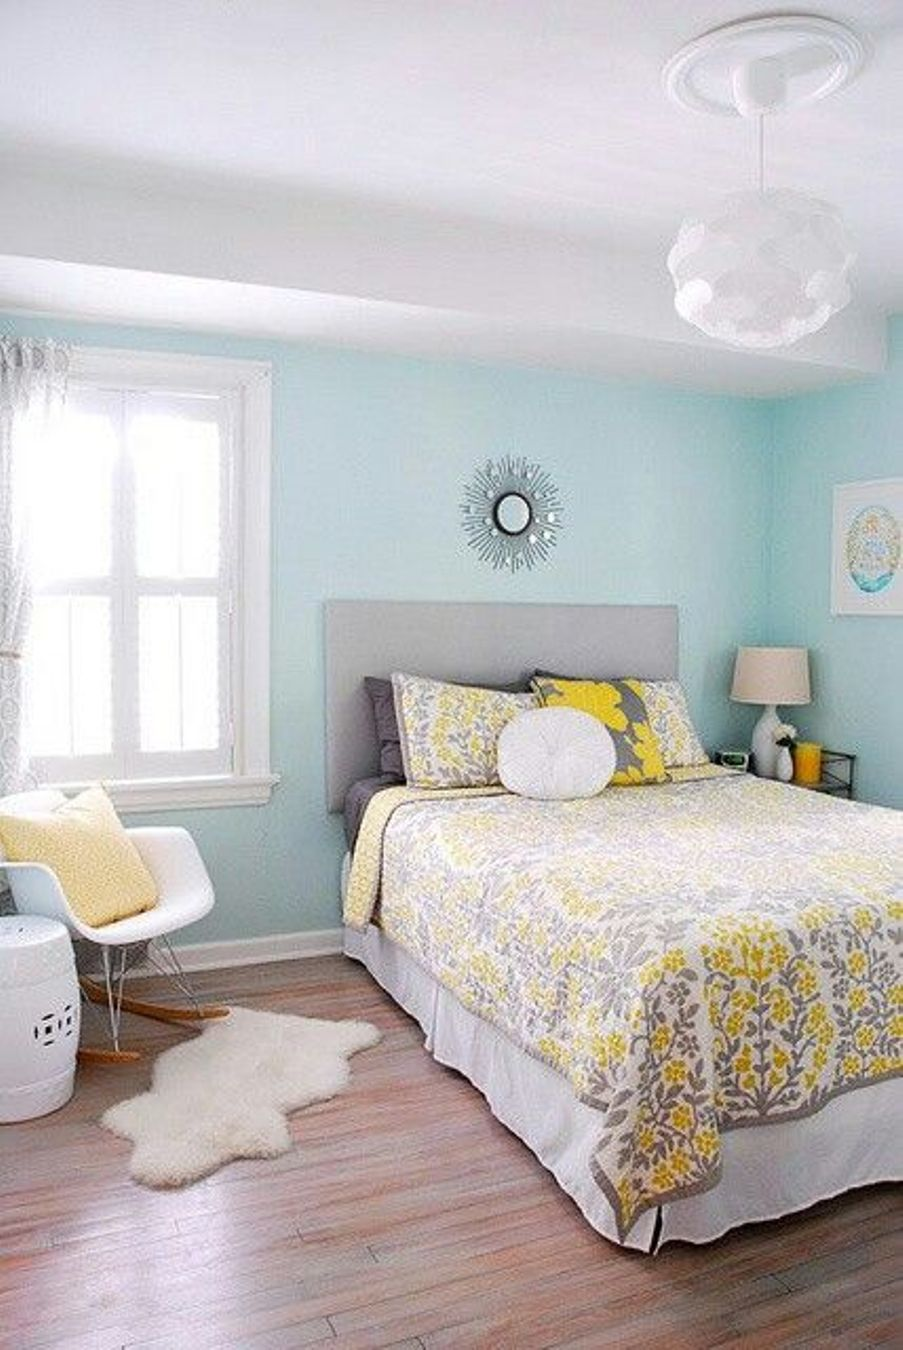 Best paint colors for small room some tips homesfeed Paint color tips